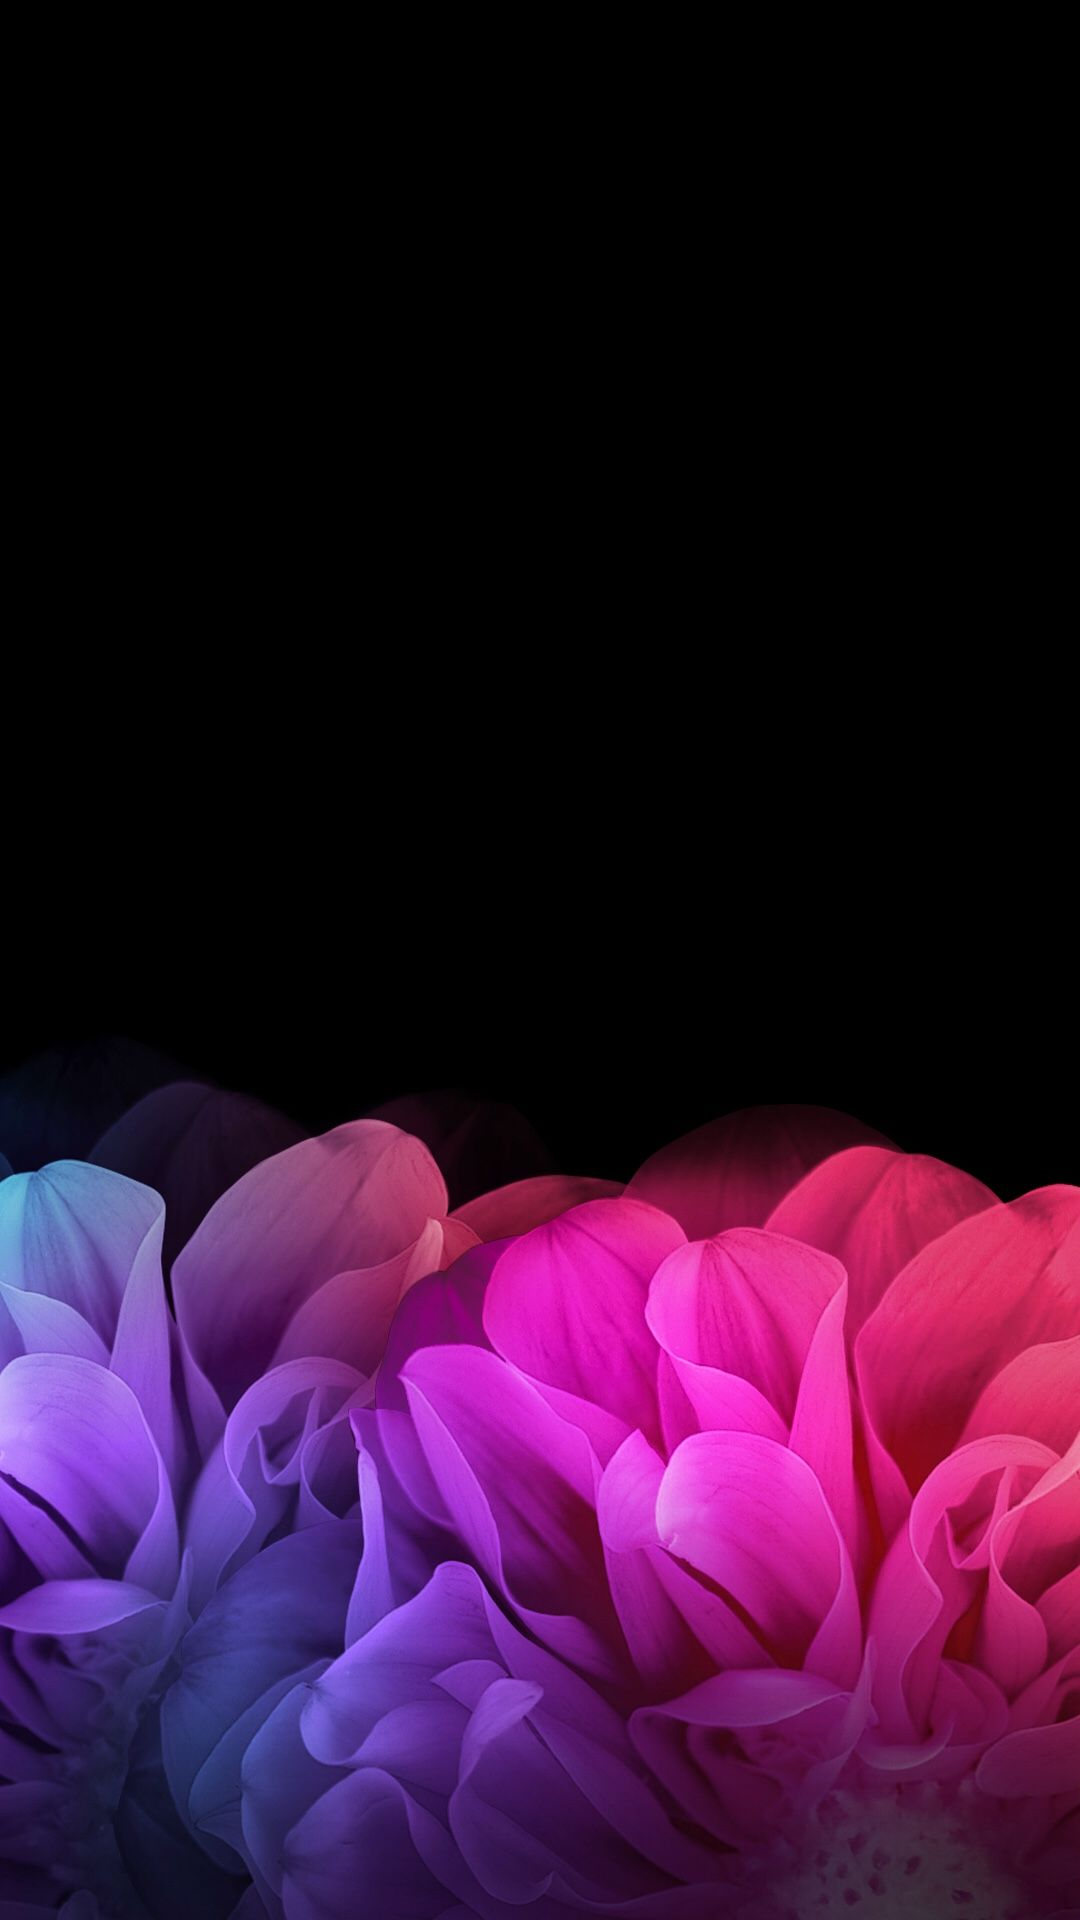 Free Download Black Floral Iphone Wallpaper Phone Backgrounds